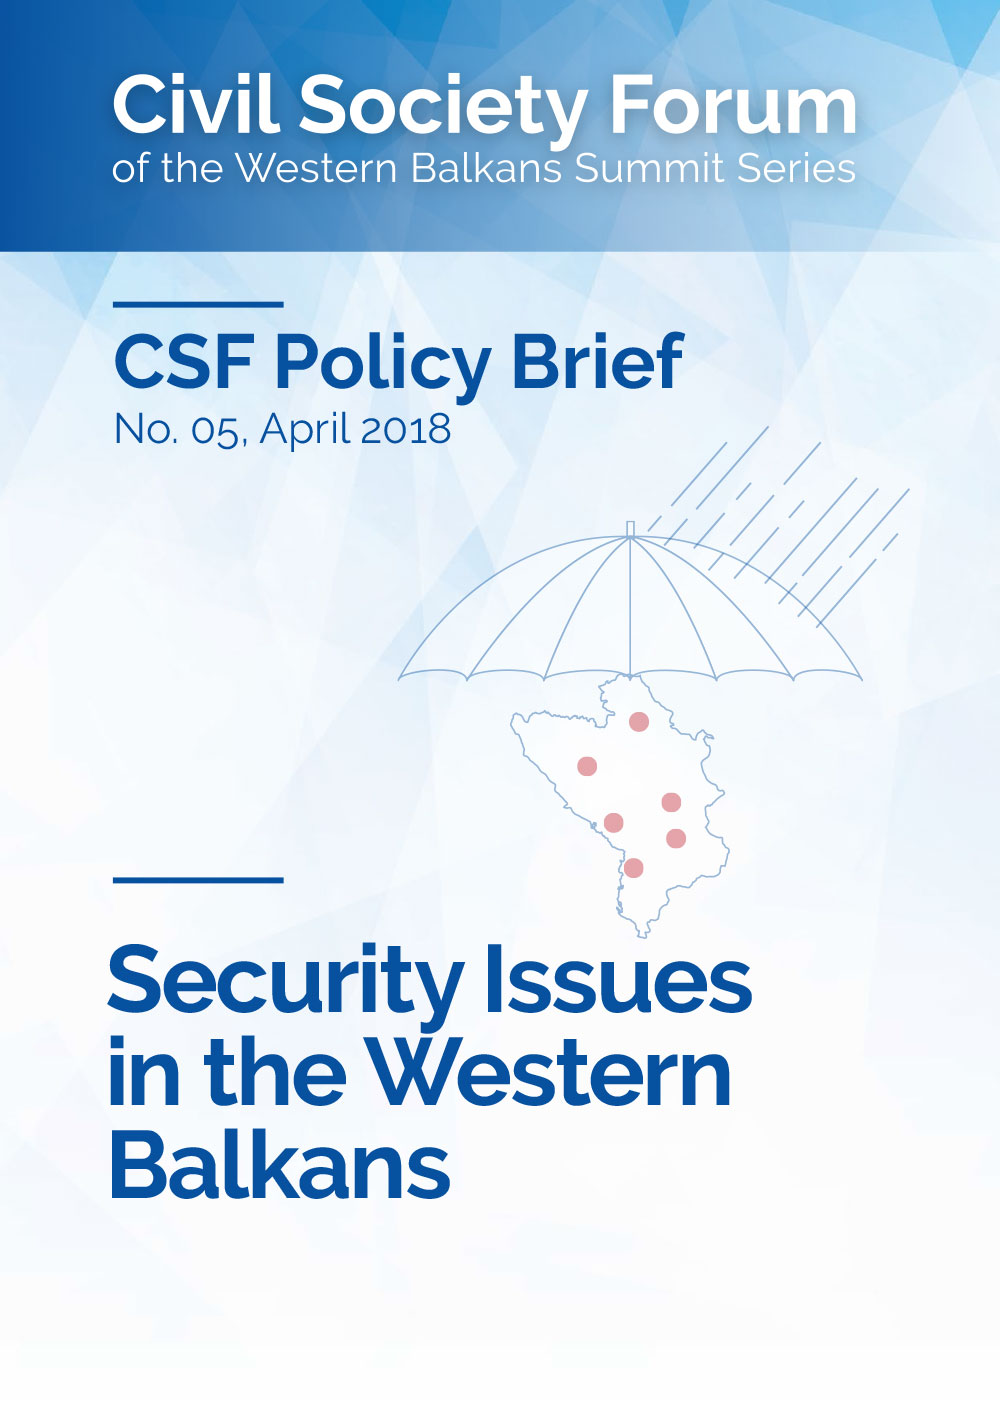 Security Issues in the Western Balkans